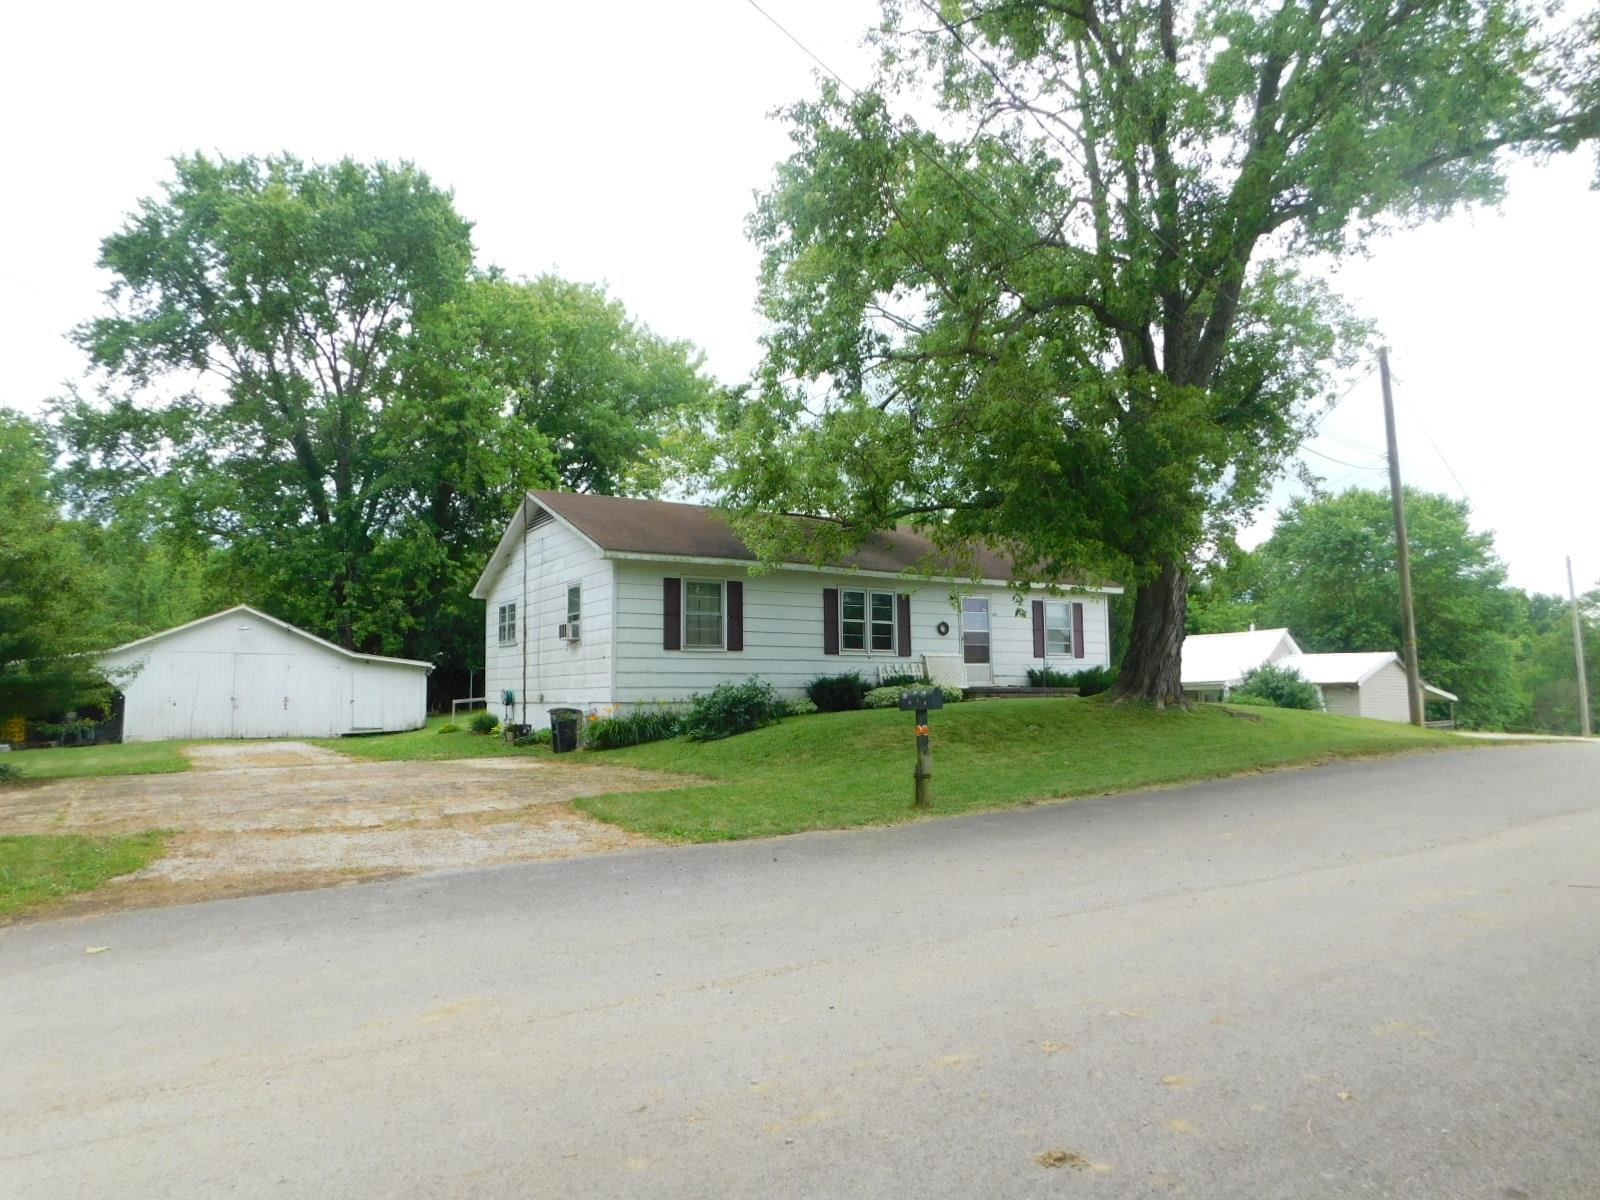 Photo 3 for 85 Worth street Monterey, KY 40359